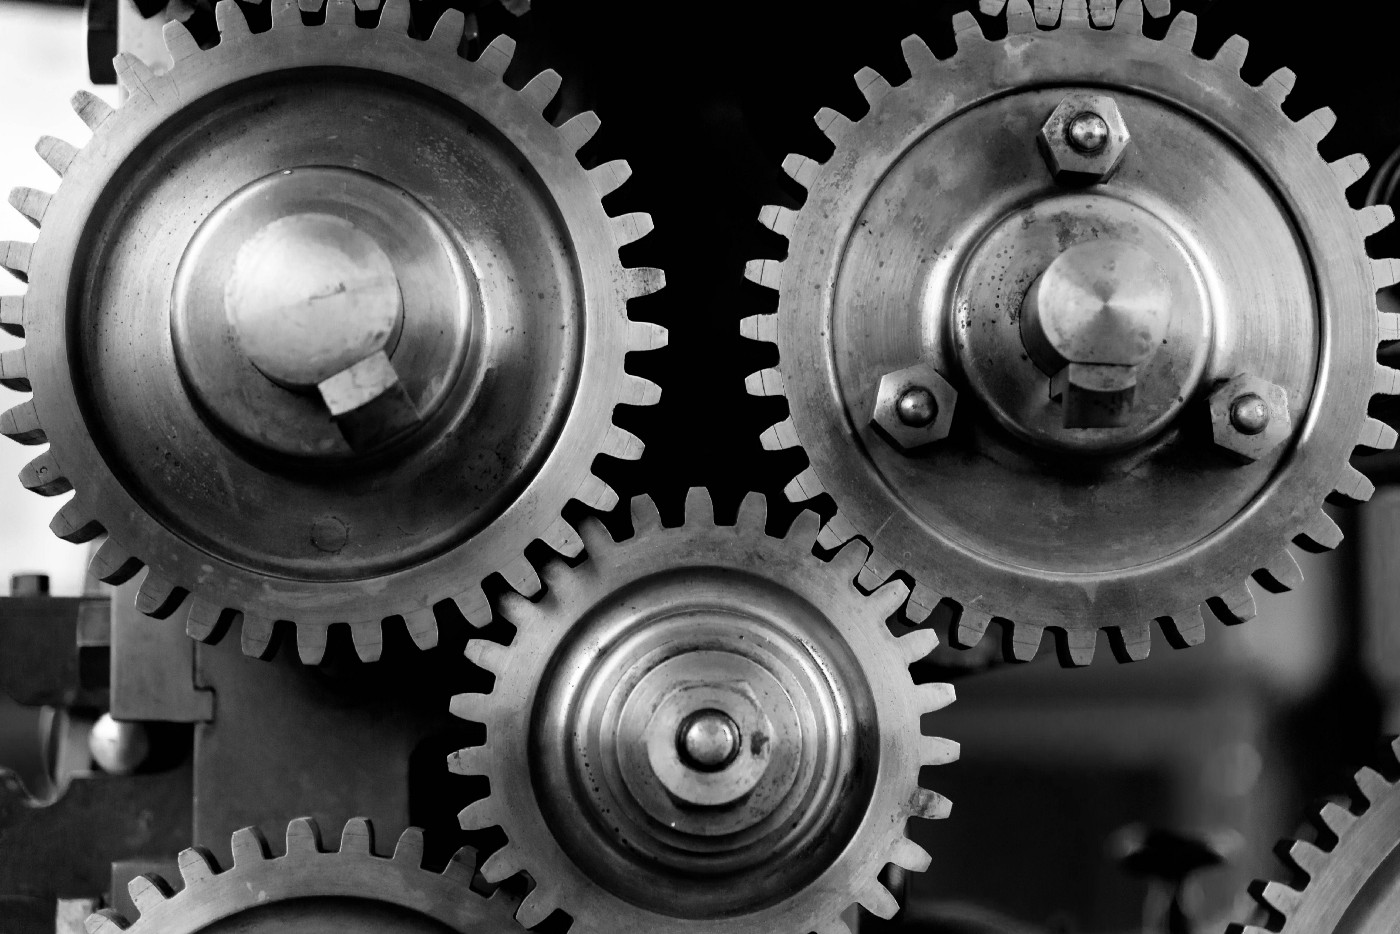 Picture of a small gear interlocked between two larger gears